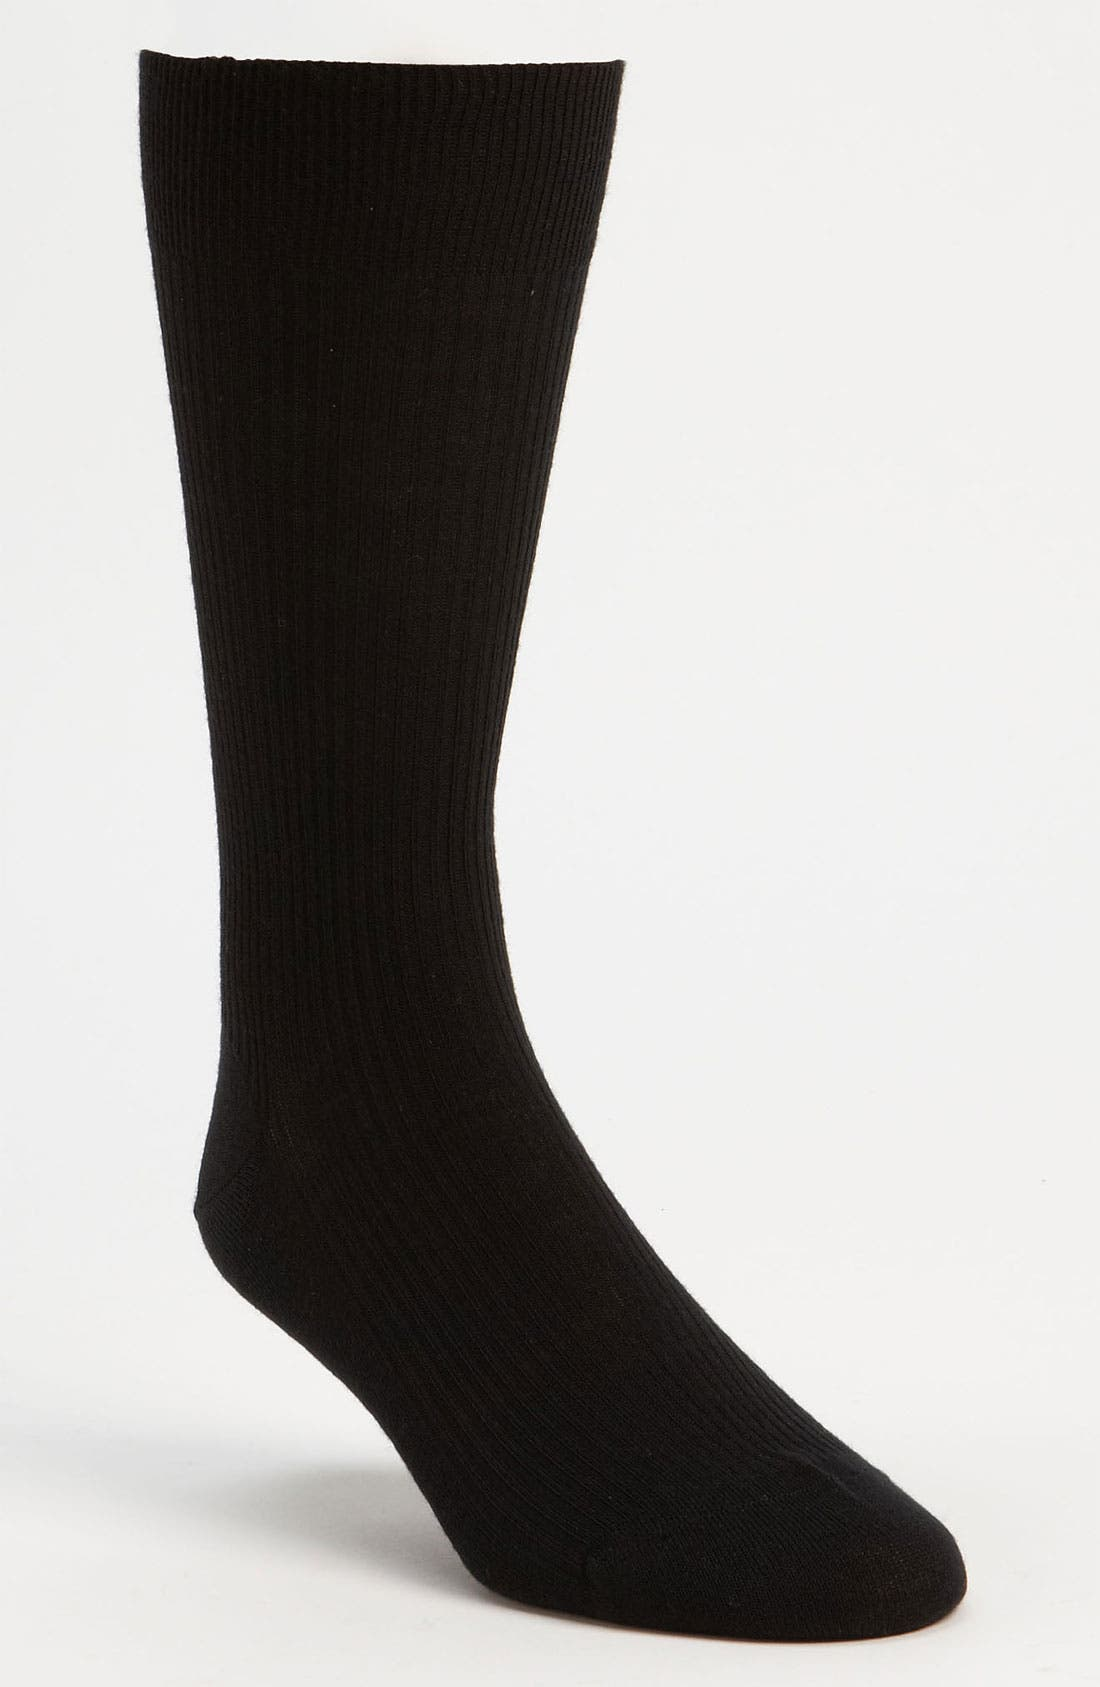 Main Image - Pantherella Merino Wool Mid Calf Dress Socks